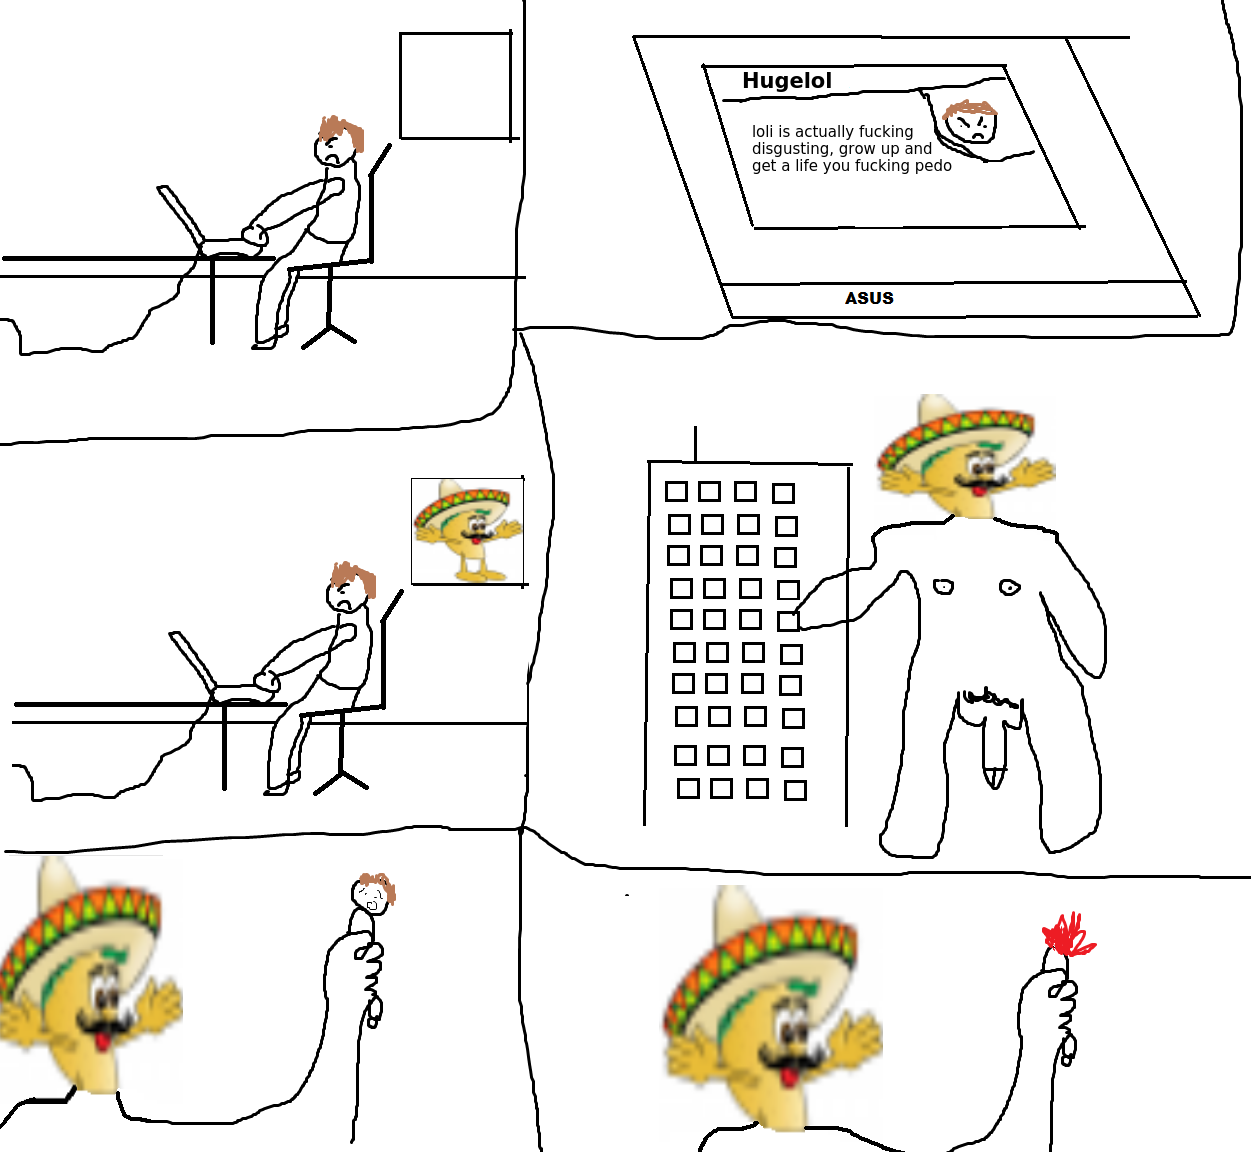 talk shit taco will find you